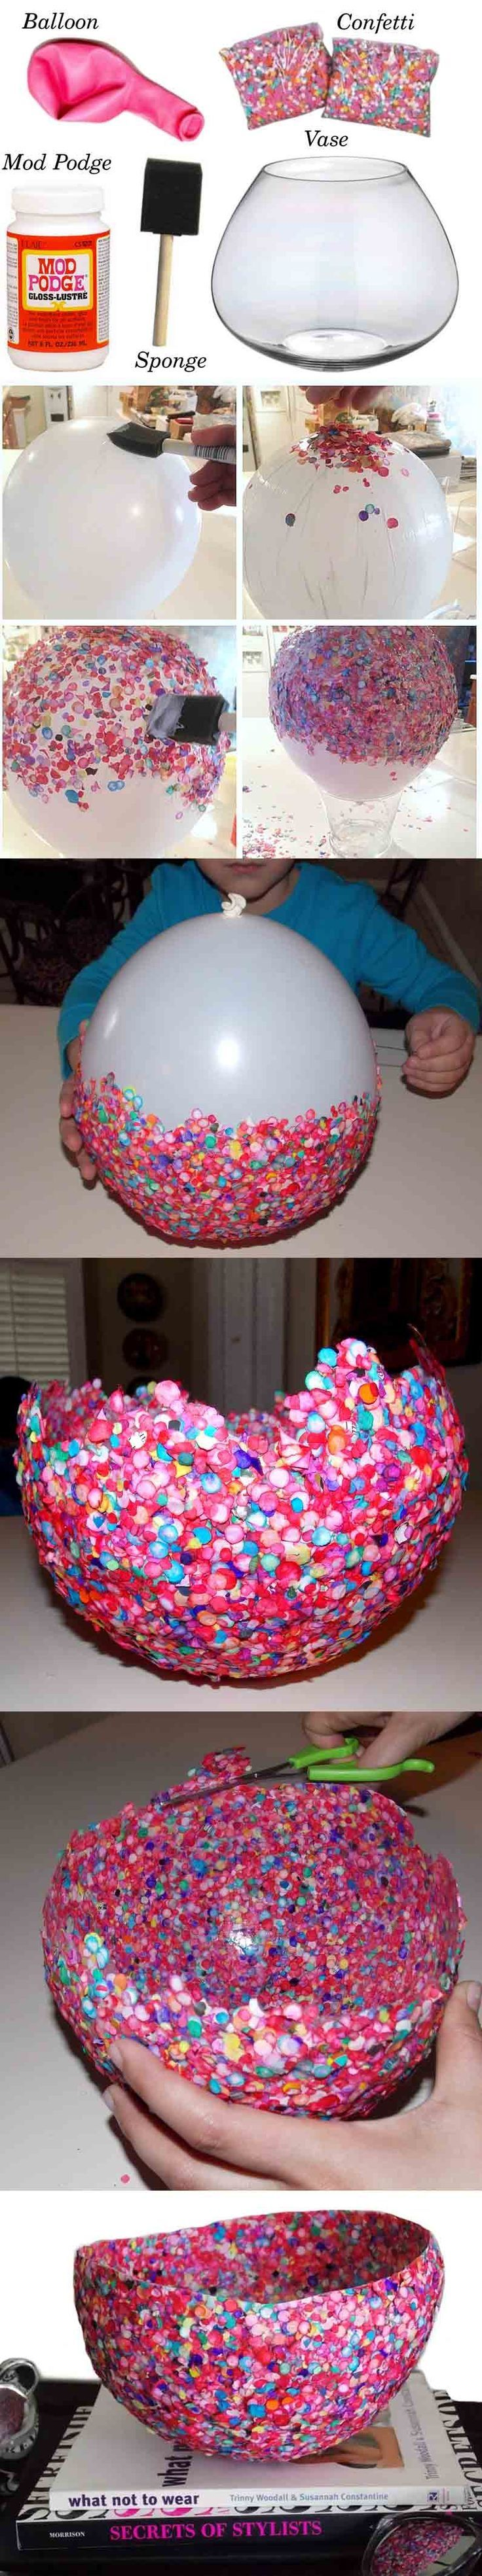 DIY Confetti Vase, but I'd like to try it with sequins instead! :D